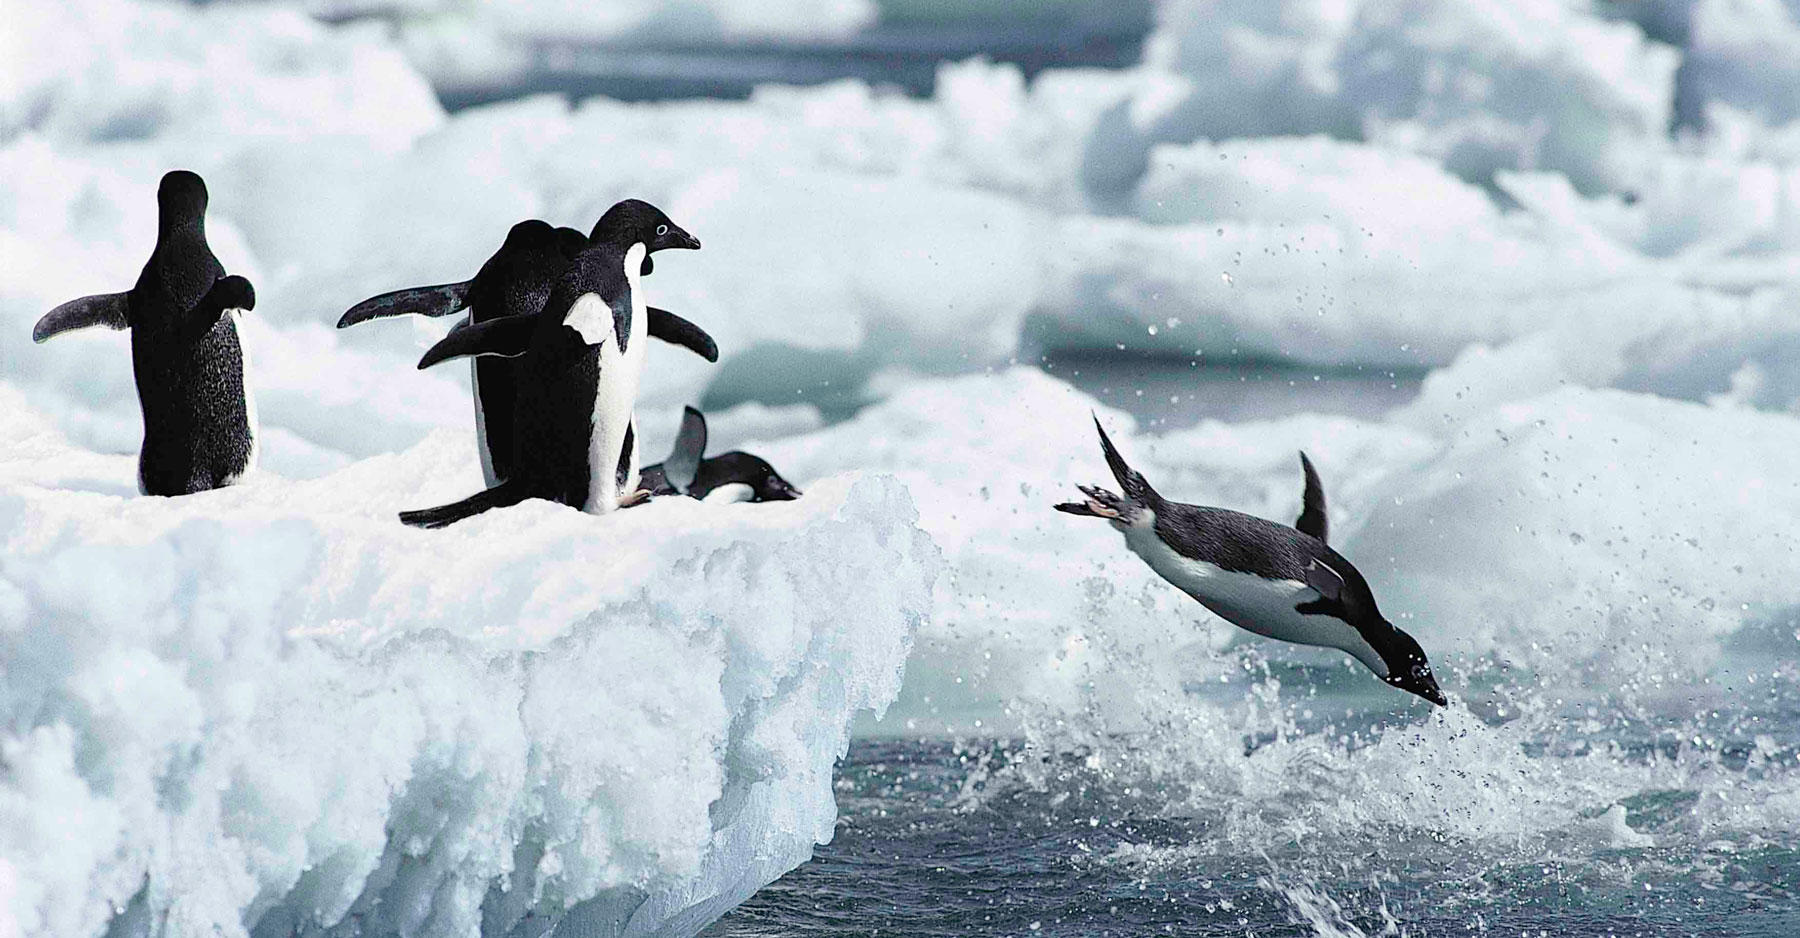 Penguins diving into water.